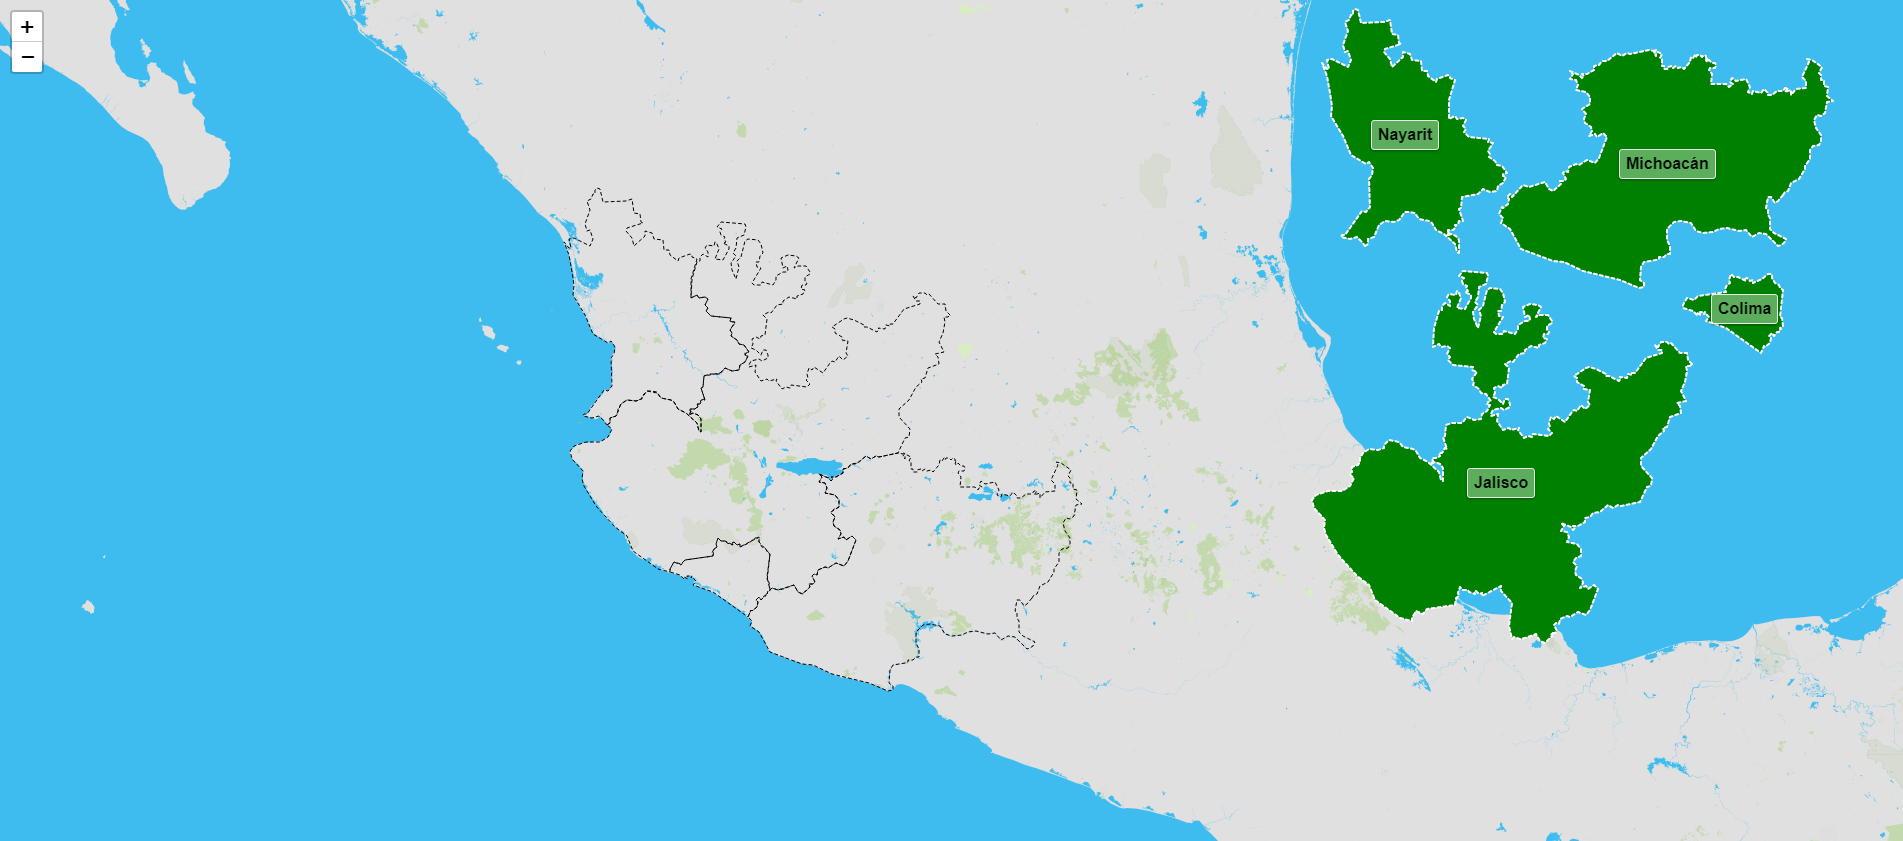 Estados de la región occidental de México